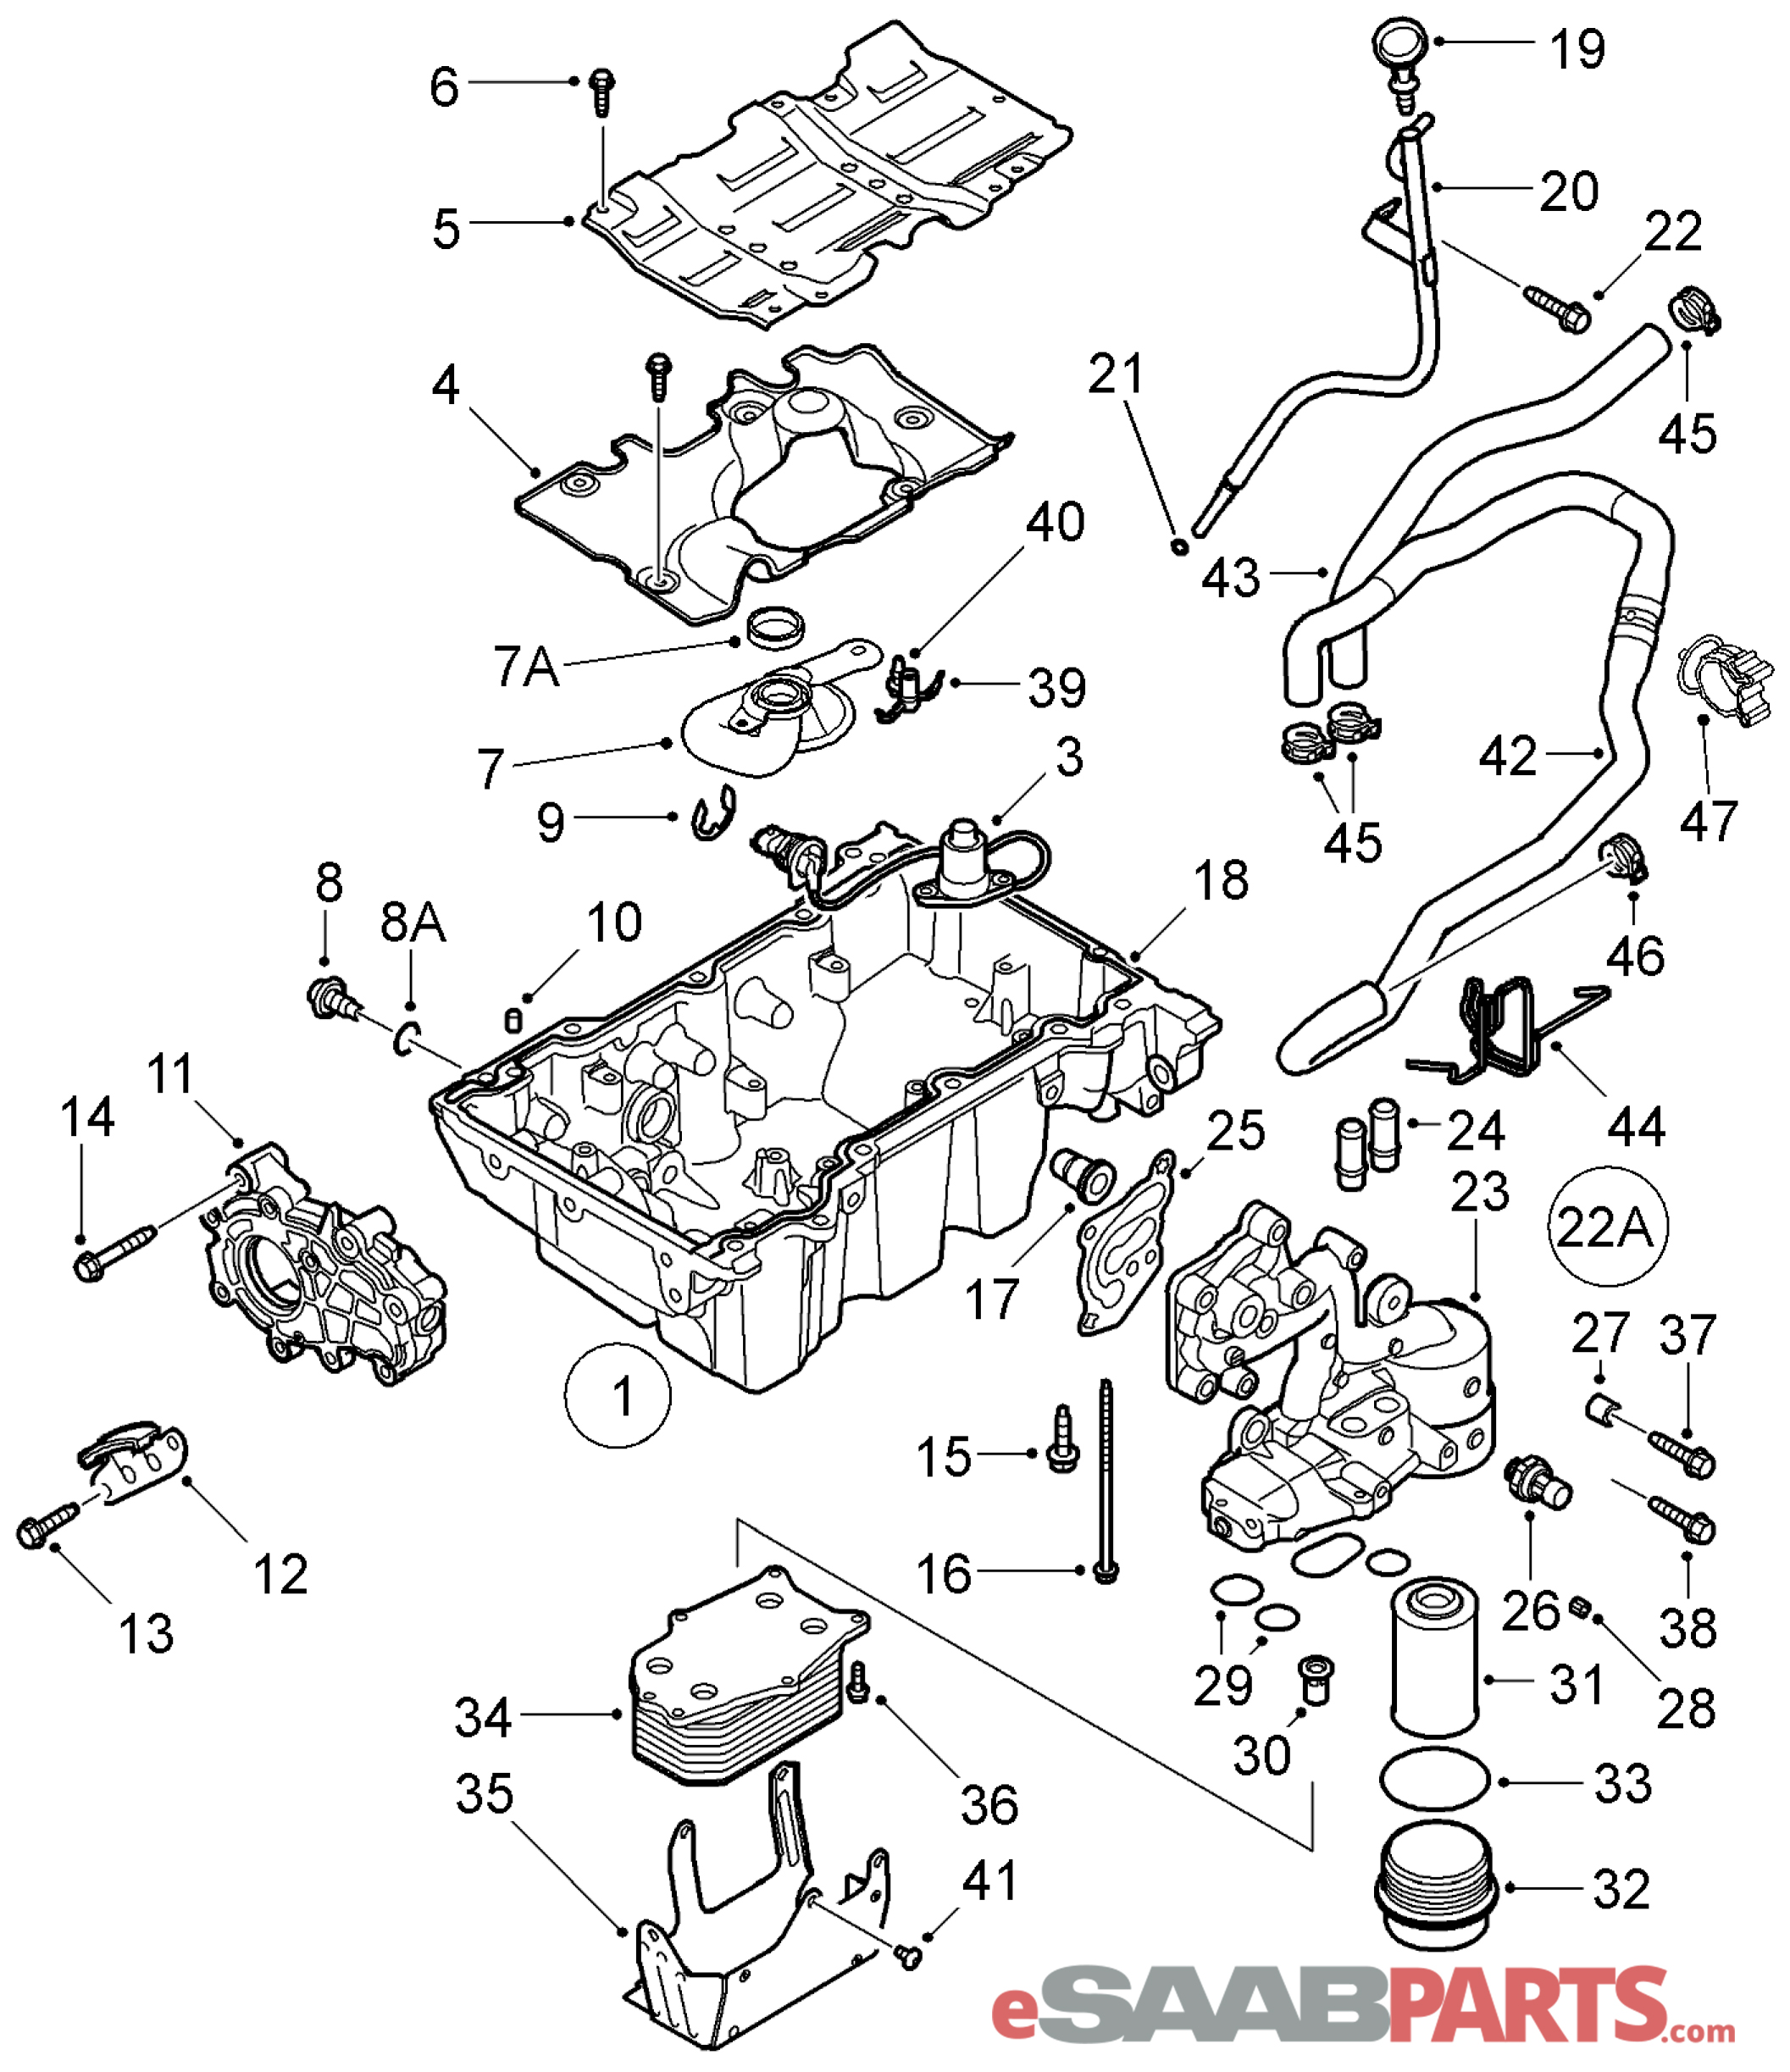 12637010 saab oil level sensor 2 8t genuine saab parts from rh esaabparts com Saab Parts Diagram Saab Parts Diagram